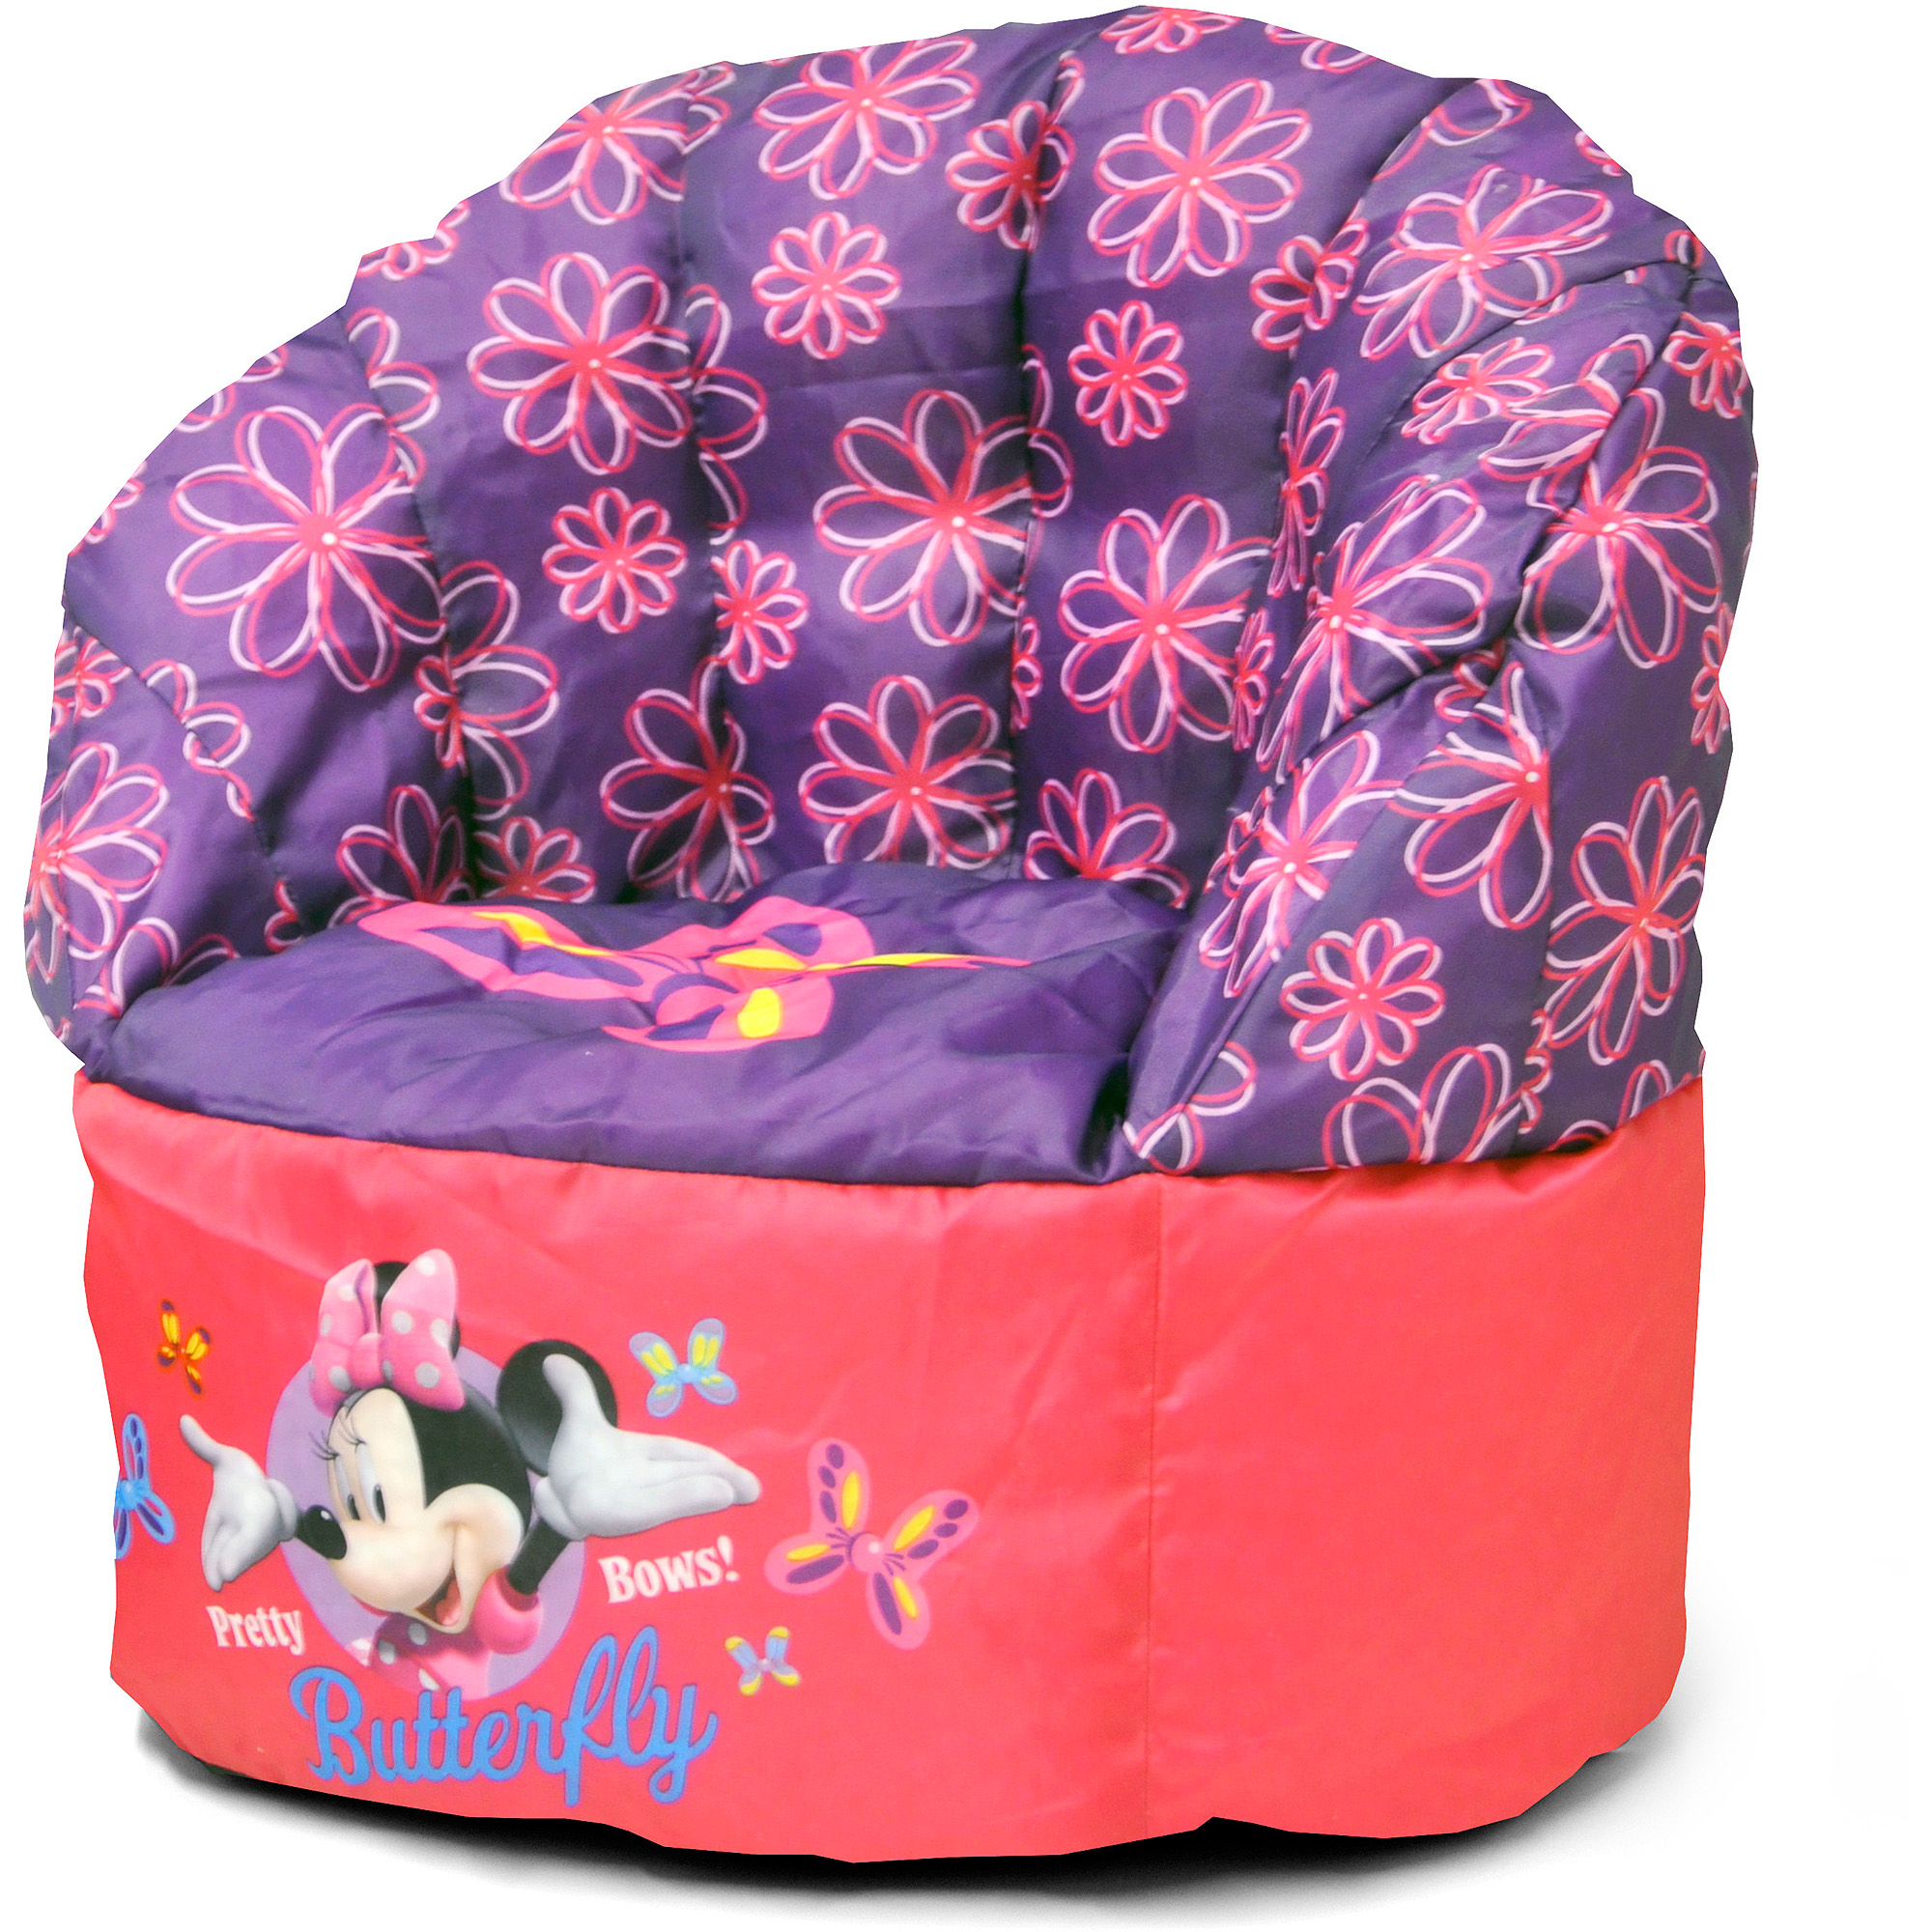 Bean Bag Chairs For Kids Purple disney minnie mouse bean bag chair - walmart